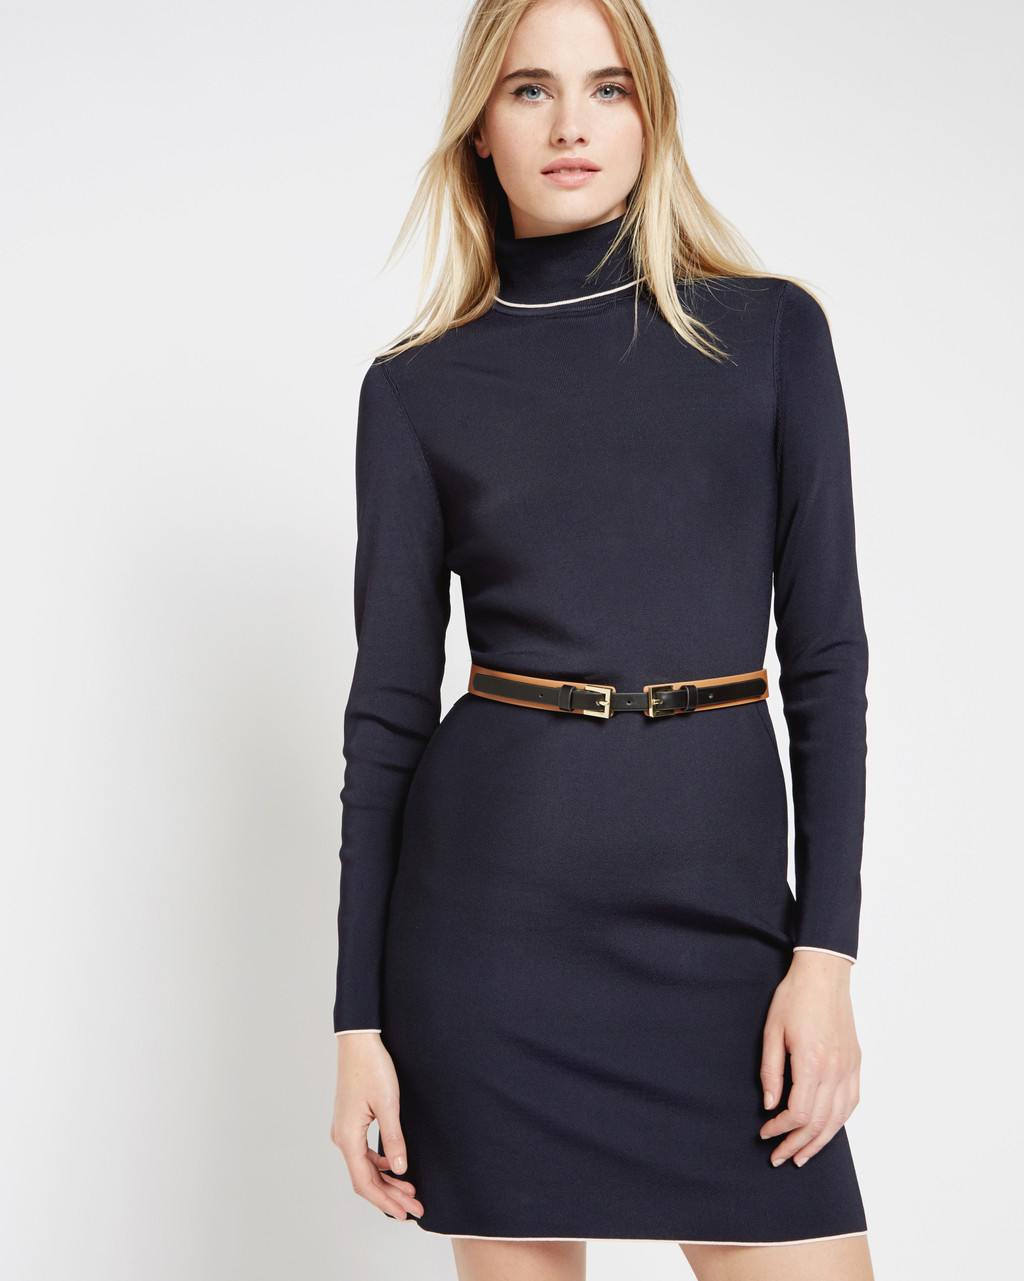 Belt Detail Knitted Dress Navy - style: jumper dress; length: mid thigh; pattern: plain; neckline: roll neck; waist detail: belted waist/tie at waist/drawstring; predominant colour: navy; occasions: casual, creative work; fit: body skimming; fibres: viscose/rayon - stretch; sleeve length: long sleeve; sleeve style: standard; texture group: knits/crochet; pattern type: knitted - other; wardrobe: basic; season: a/w 2016